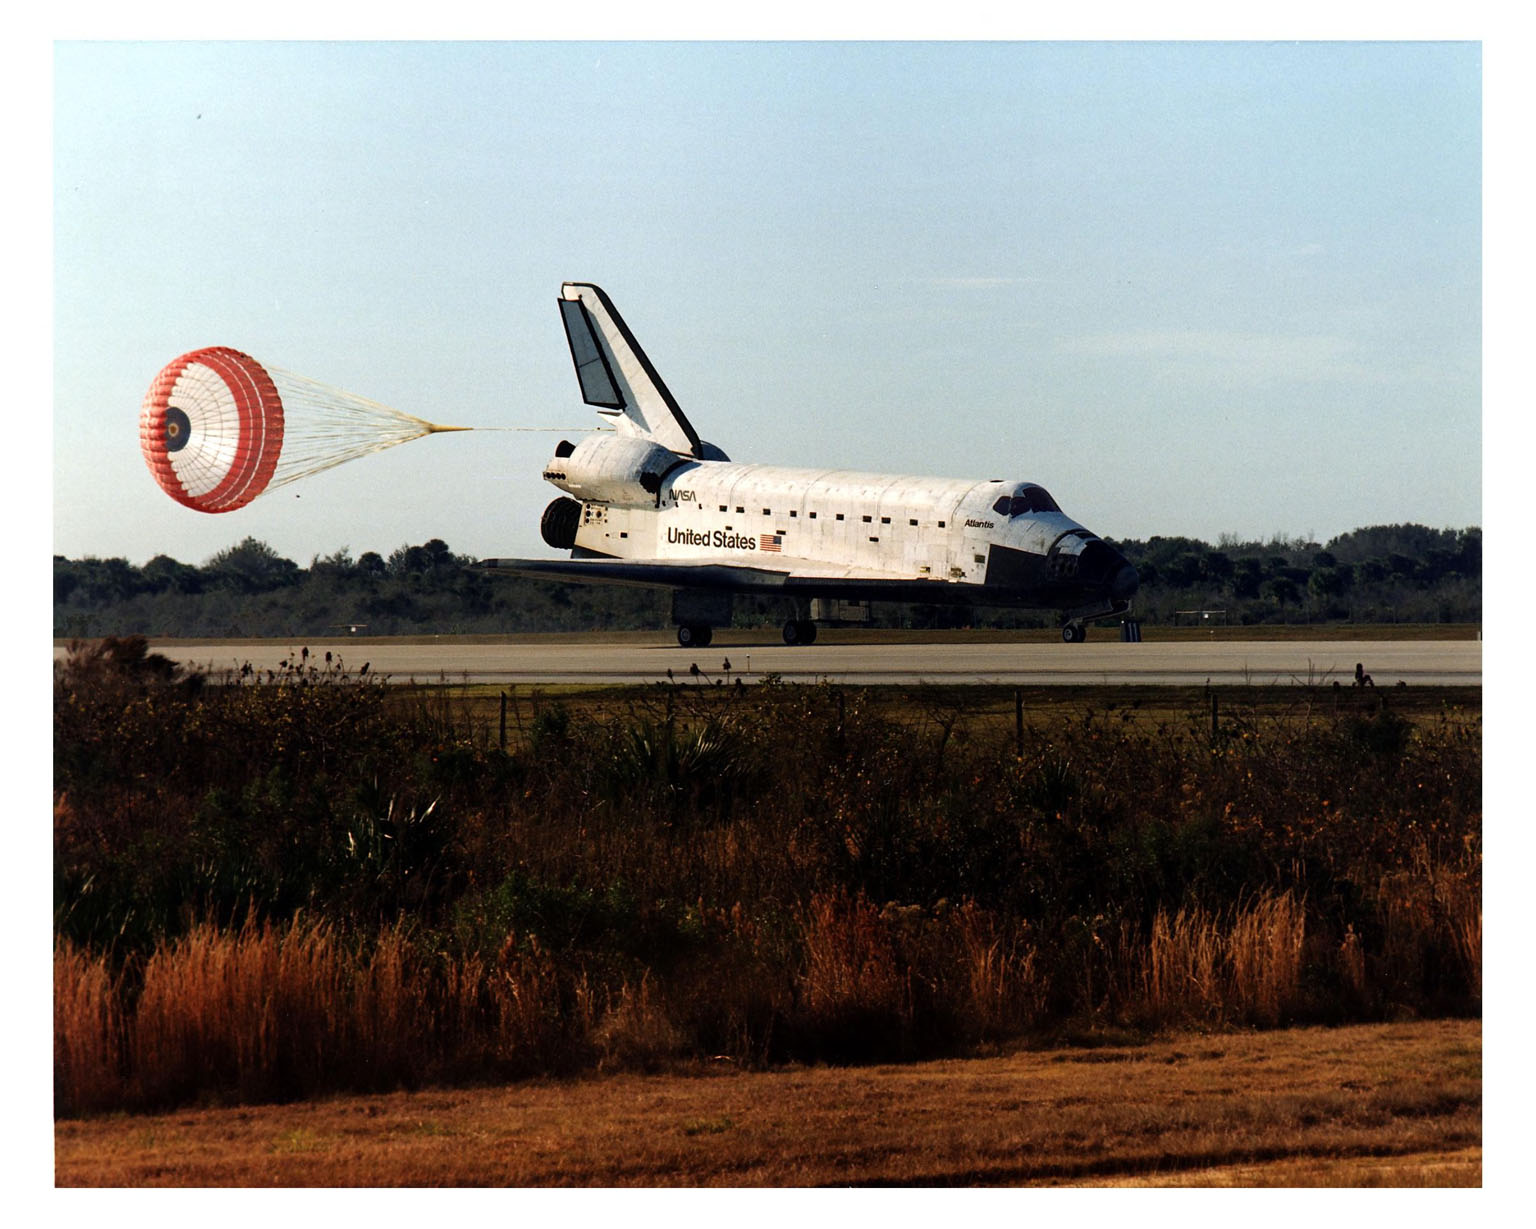 """KENNEDY SPACE CENTER, FLA. -- With its drag chute deployed, the Space Shuttle orbiter Atlantis touches down on Runway 33 on the second opportunity at 9:22:44 a.m. EST Jan. 22 to conclude the fifth Shuttle-Mir docking mission and return NASA astronaut John Blaha to Earth after four months in space. At main gear touchdown, the STS-81 mission duration was 10 days, 4 hours, 55 minutes. This was the 34th KSC landing in Shuttle history. Mission Commander Michael A. Baker flew Atlantis to a perfect landing, with help from Pilot Brent W. Jett, Jr. Other returning STS-81 crew members are Mission Specialists John M.Grunsfeld, Peter J. K. """"Jeff"""" Wisoff and Marsha S. Ivins. Atlantis also brought back experiment samples from the Russian space station Mir for analysis on Earth, along with Russian logistics equipment"""